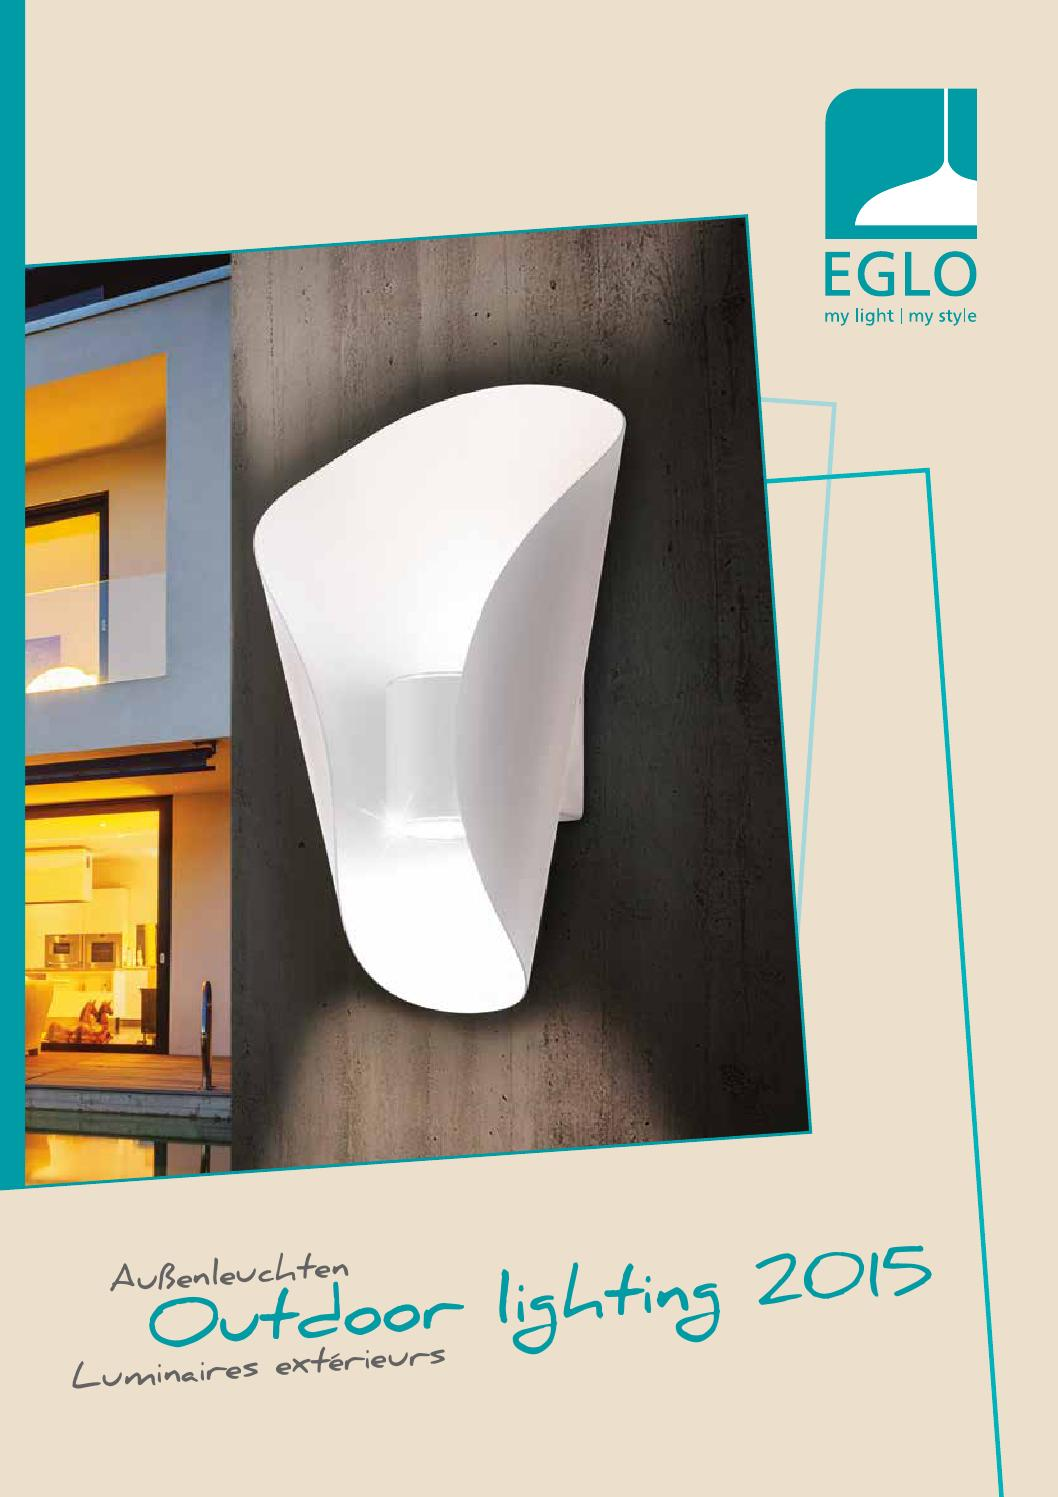 Eglo Verlichting Made Eglo Outdoor Lighting 2015